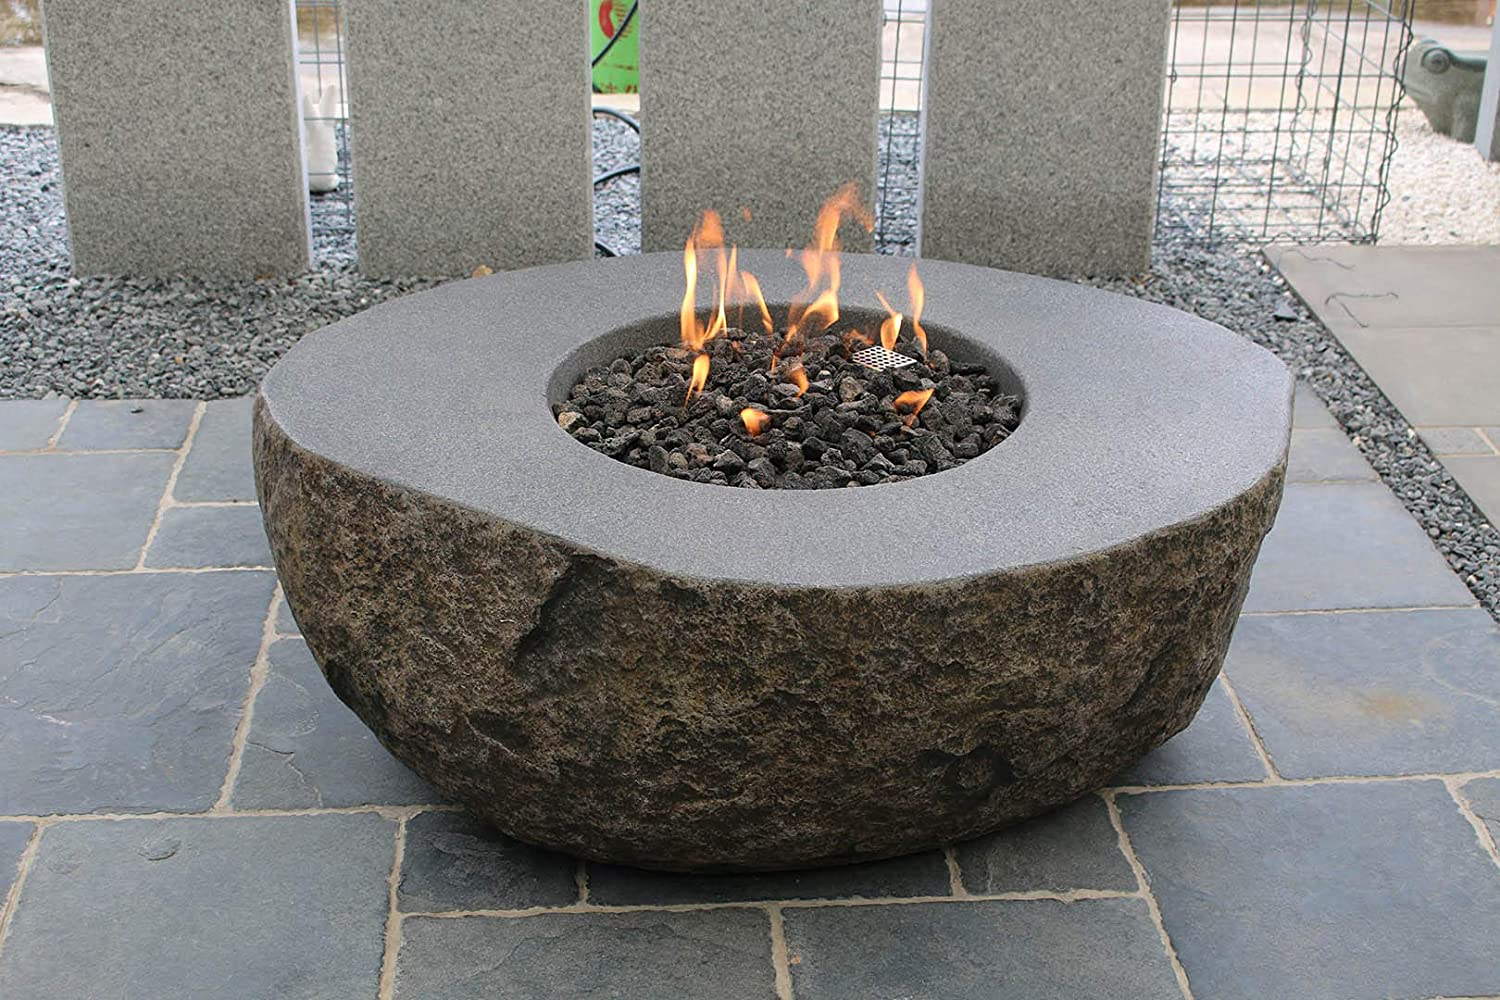 """Elementi Boulder Fire Pit Table Concrete Propane 43"""" x 35"""", Outdoor Heating Bowl Natural Rock Like Appearance, Fire Table Patio Furniture, CSA & CE Certified"""